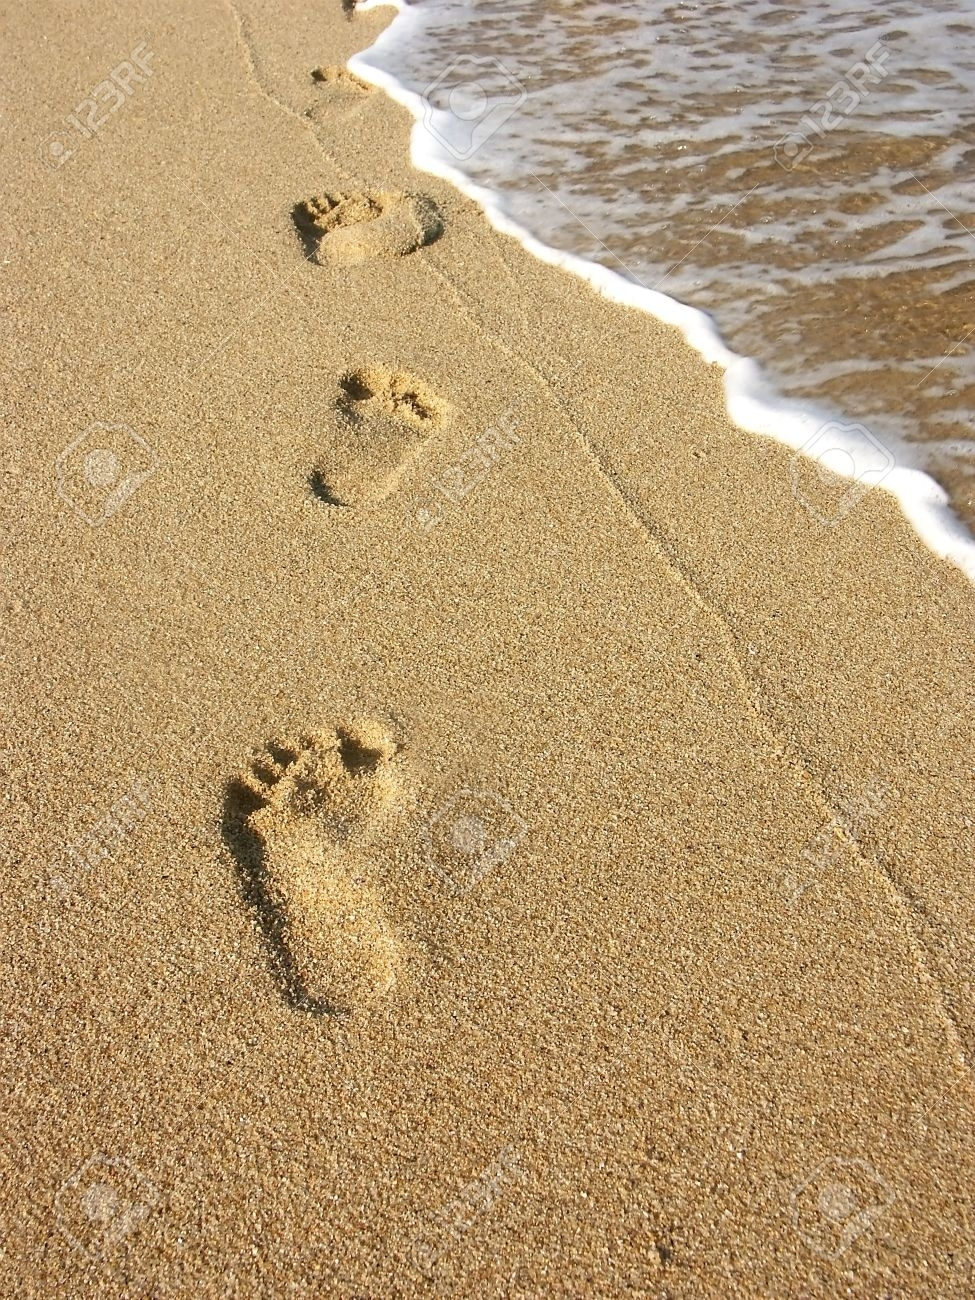 footprints along the seashore stock photo, picture and royalty free